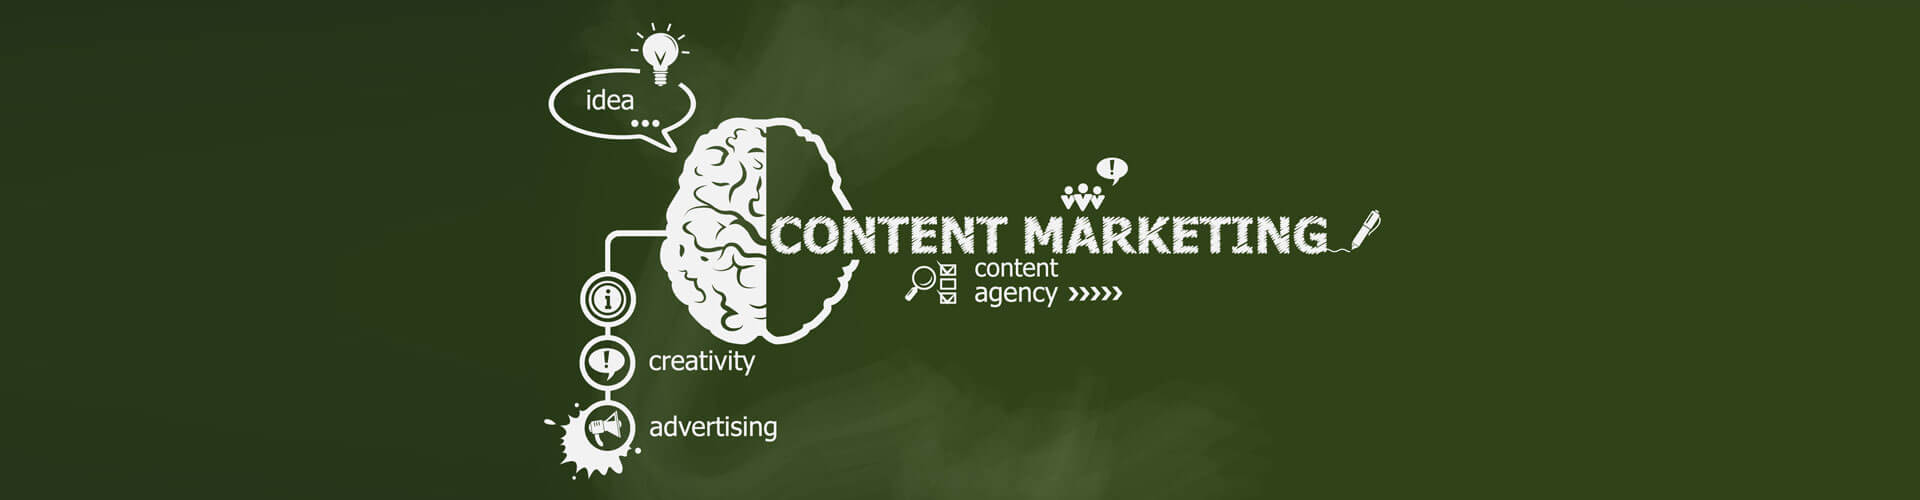 Content Marketing Goals and Objectives